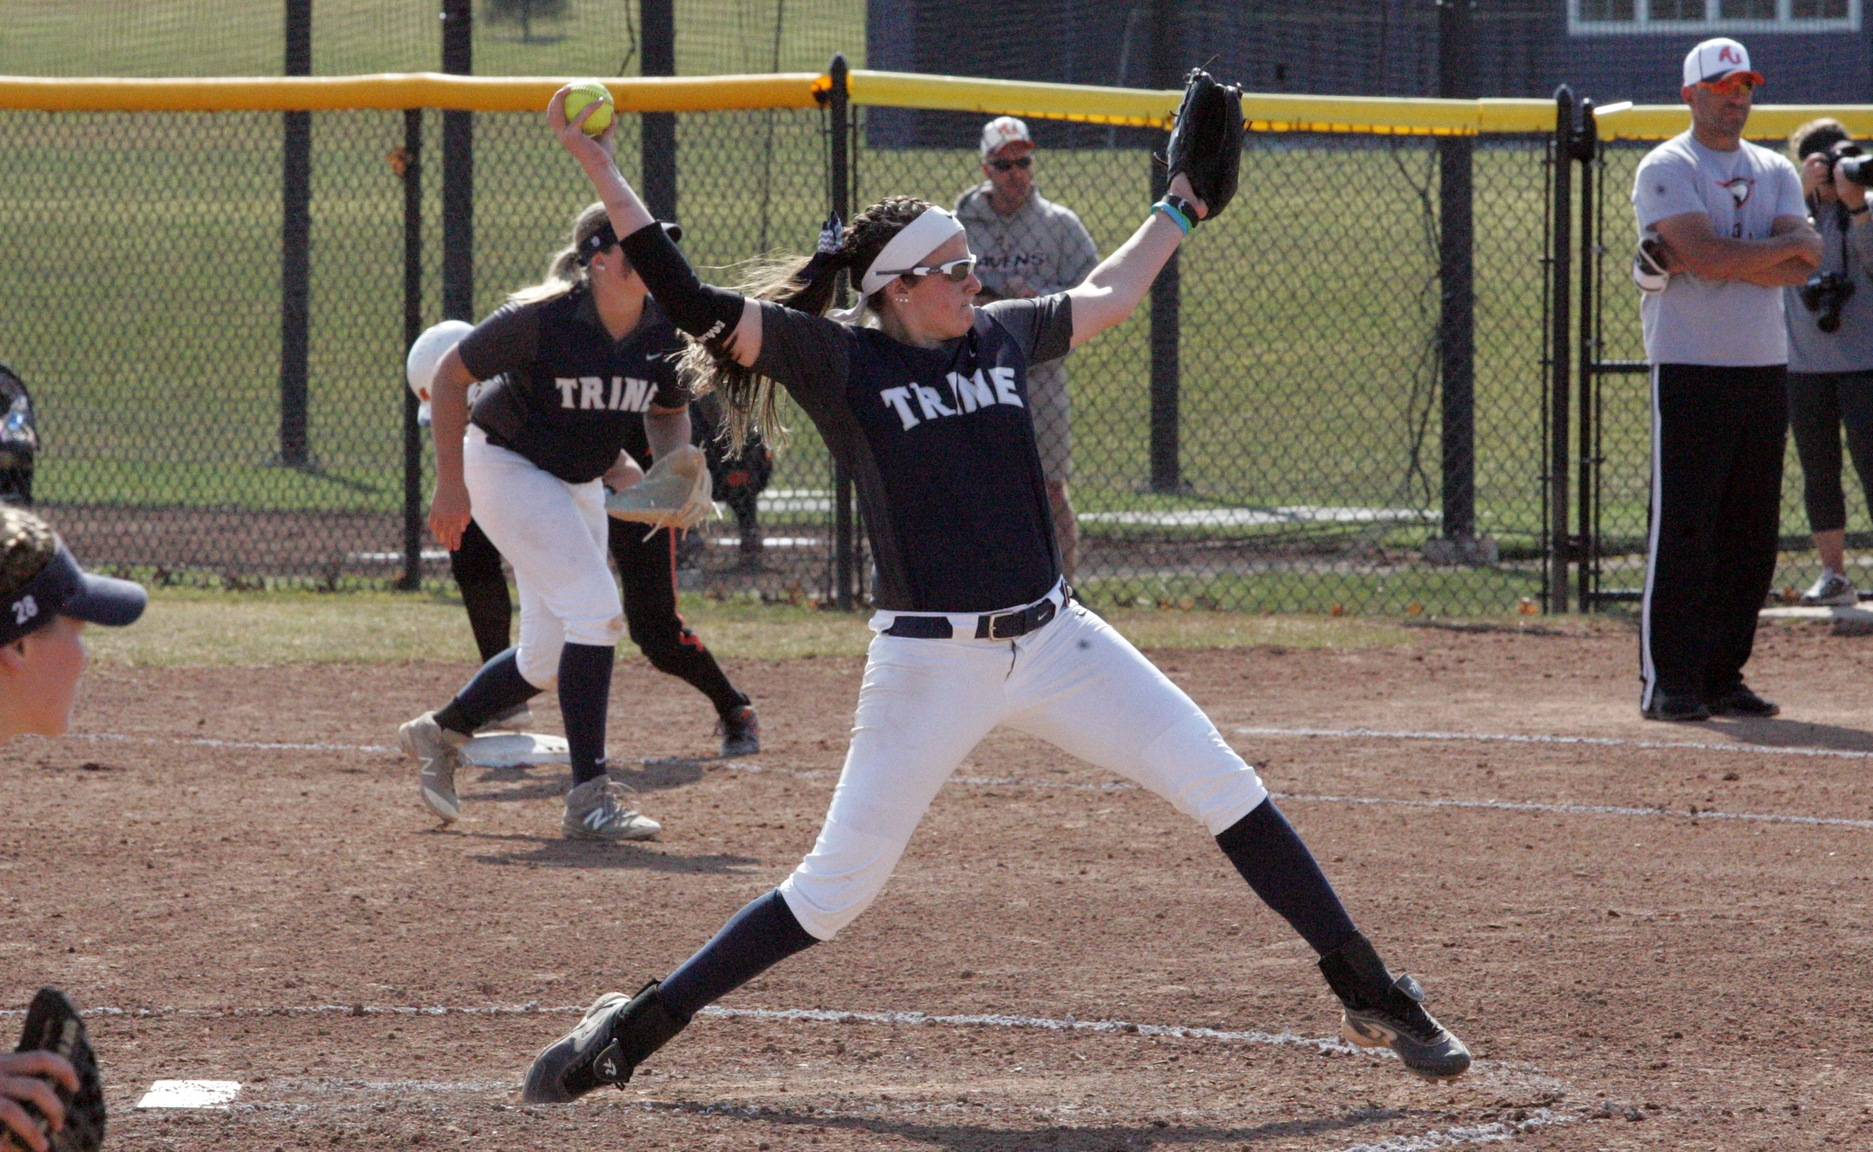 Thunder Win-Streak Snapped in Game Two by ONU